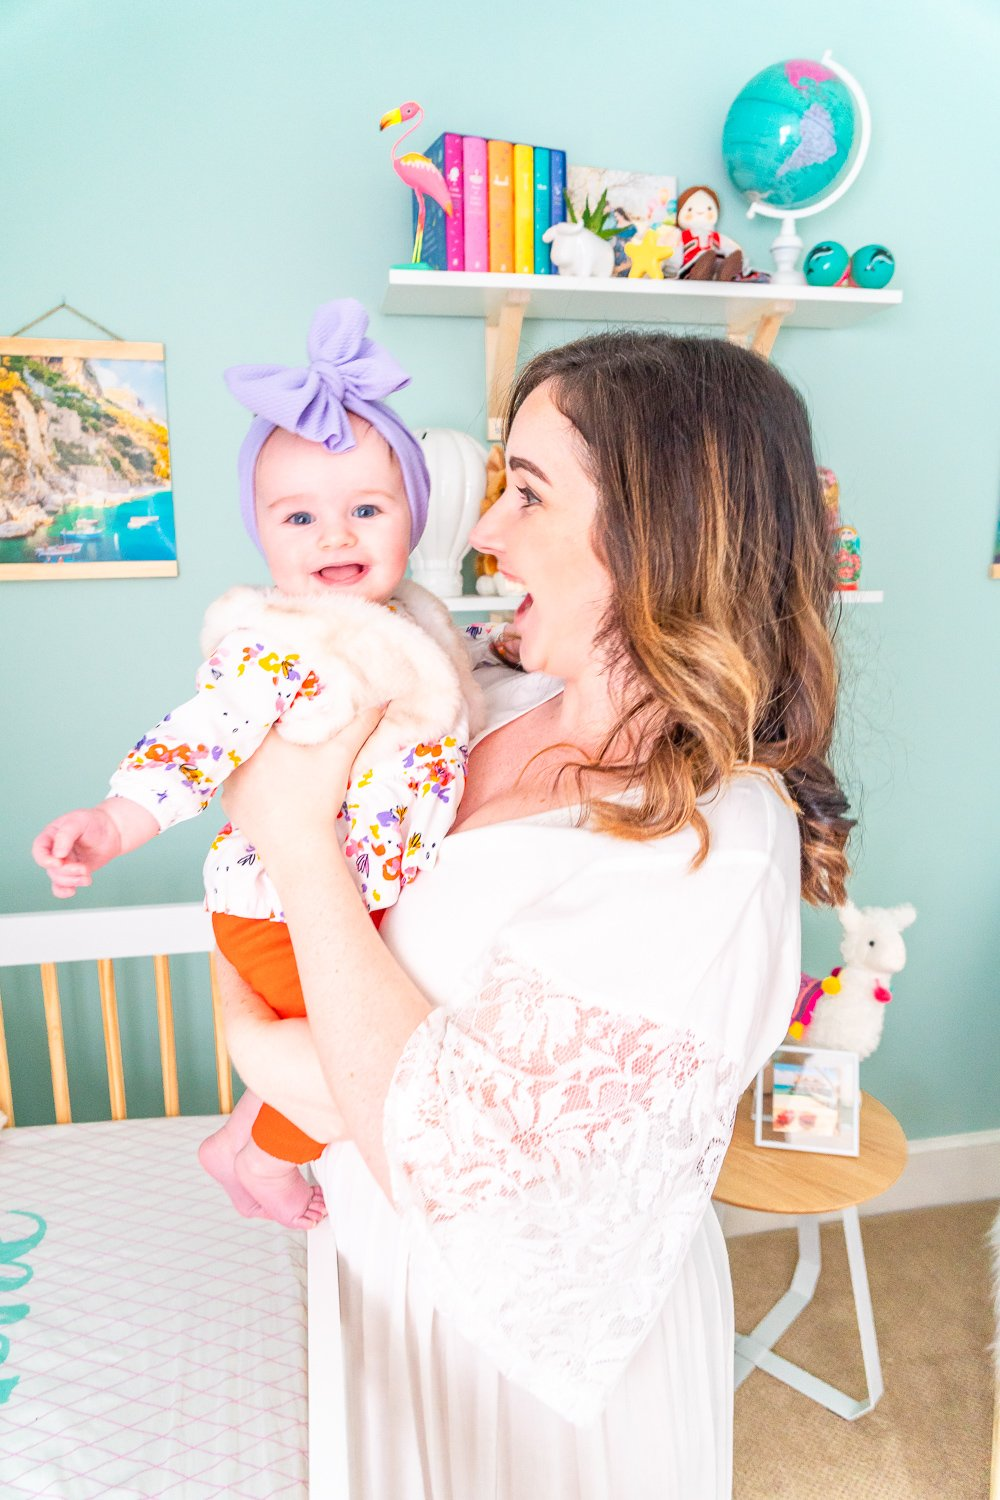 Mother and daughter standing by crib in travel inspired nursery.